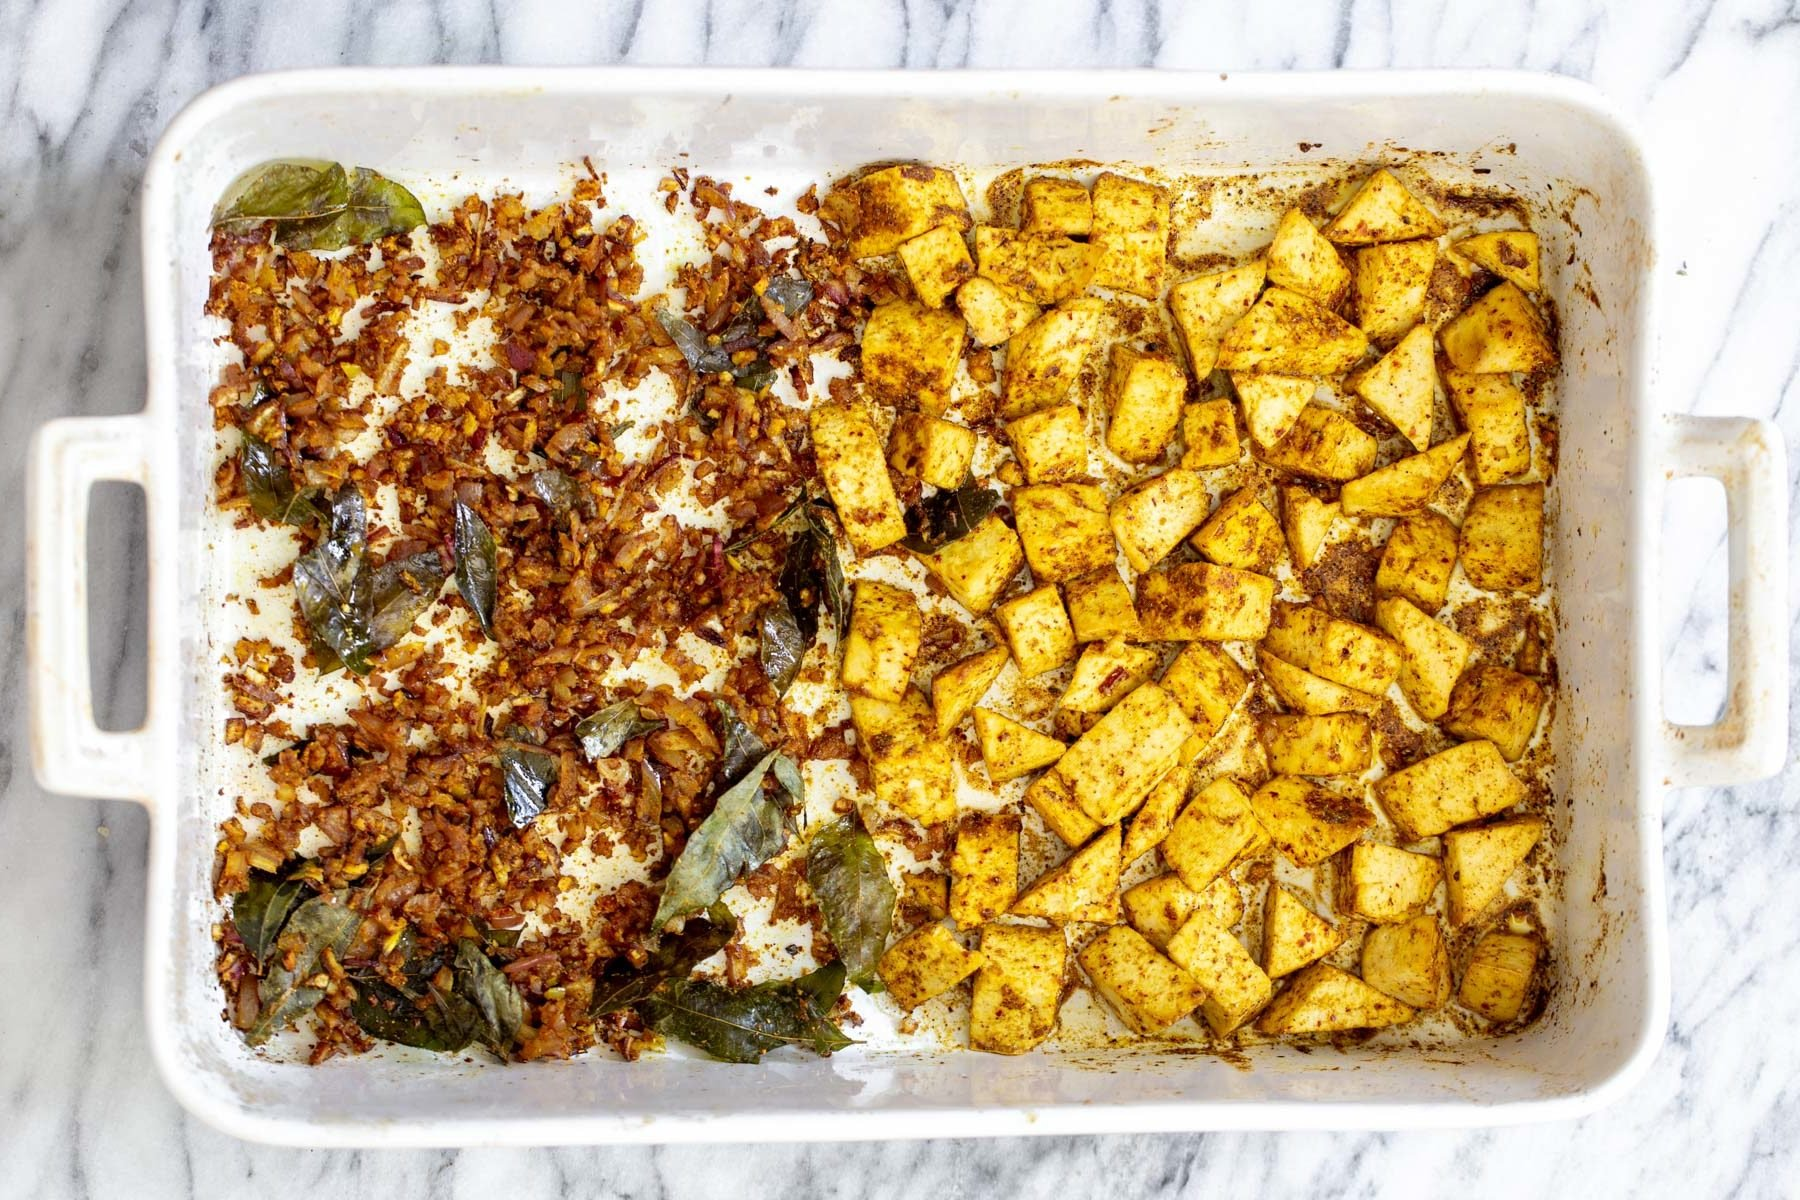 casserole dish with spiced baked tofu on one side and onions on the other side